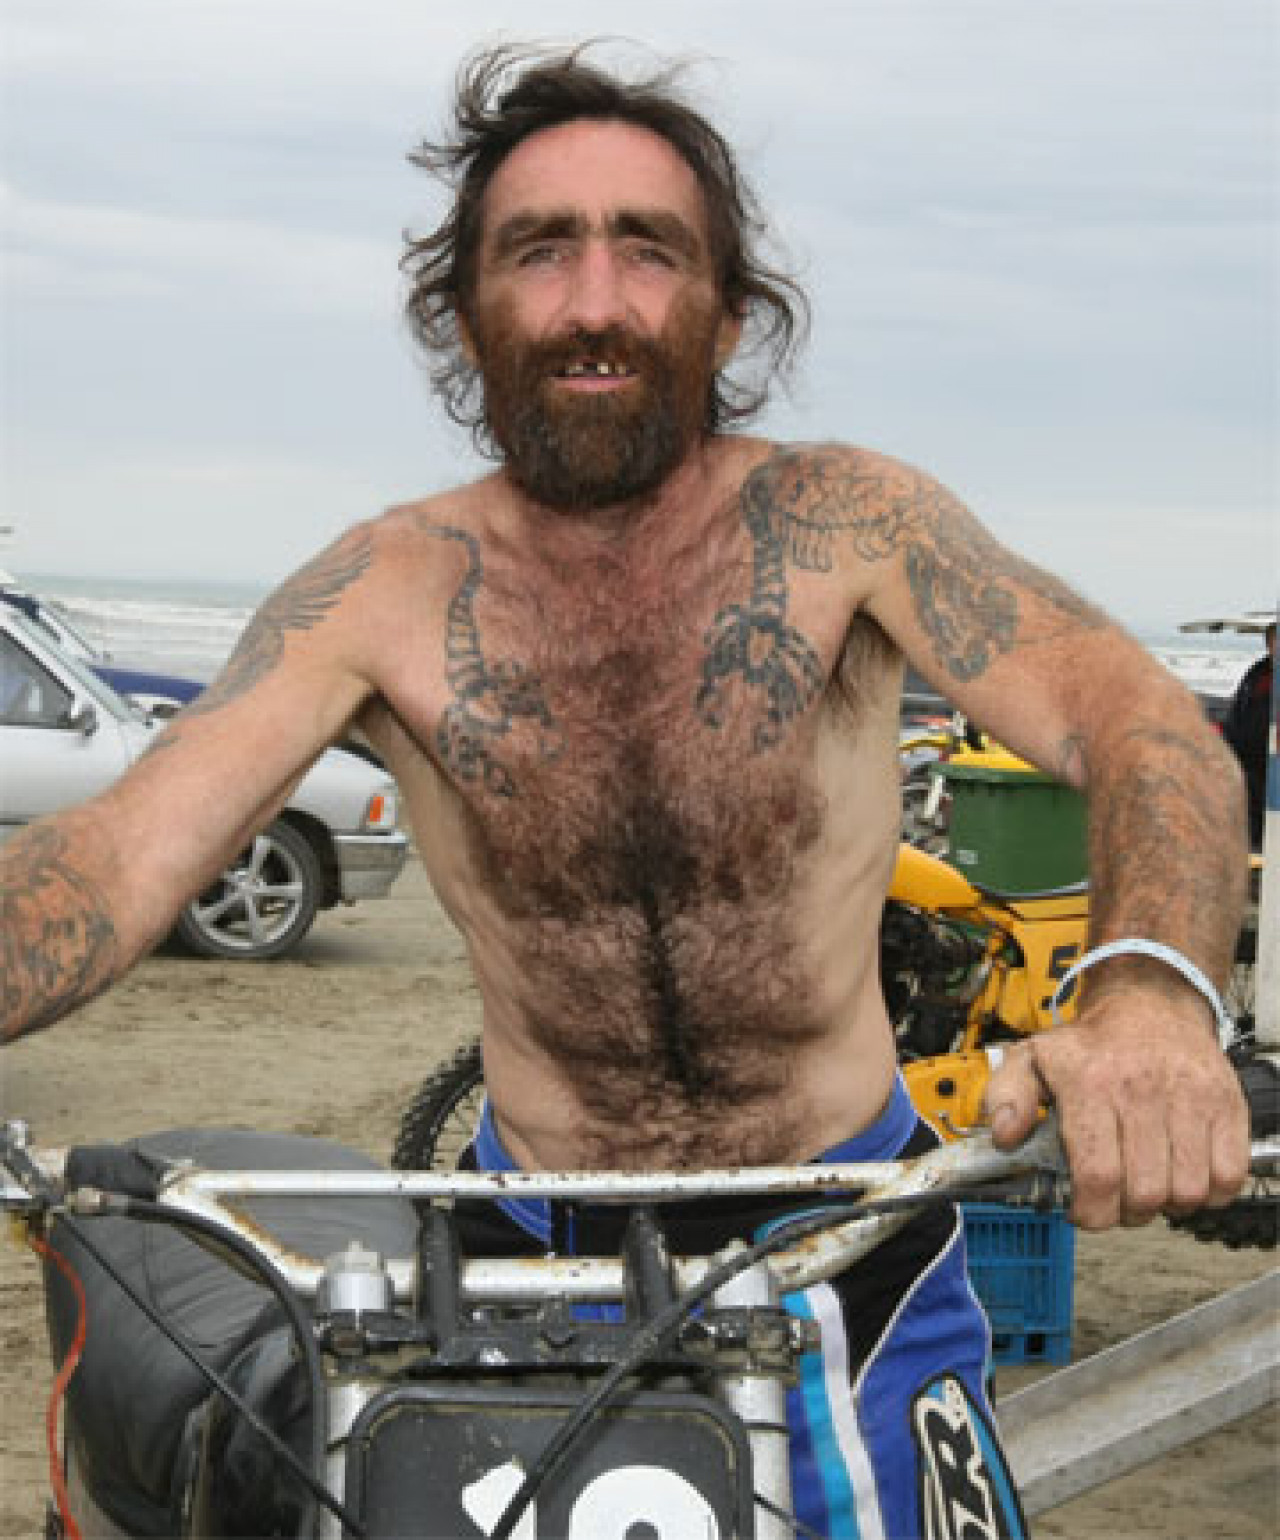 In 2010 West Coast participant Kevin Ryan dedicated his ride to the victims of New Zealand's Pike River coalmining disaster.